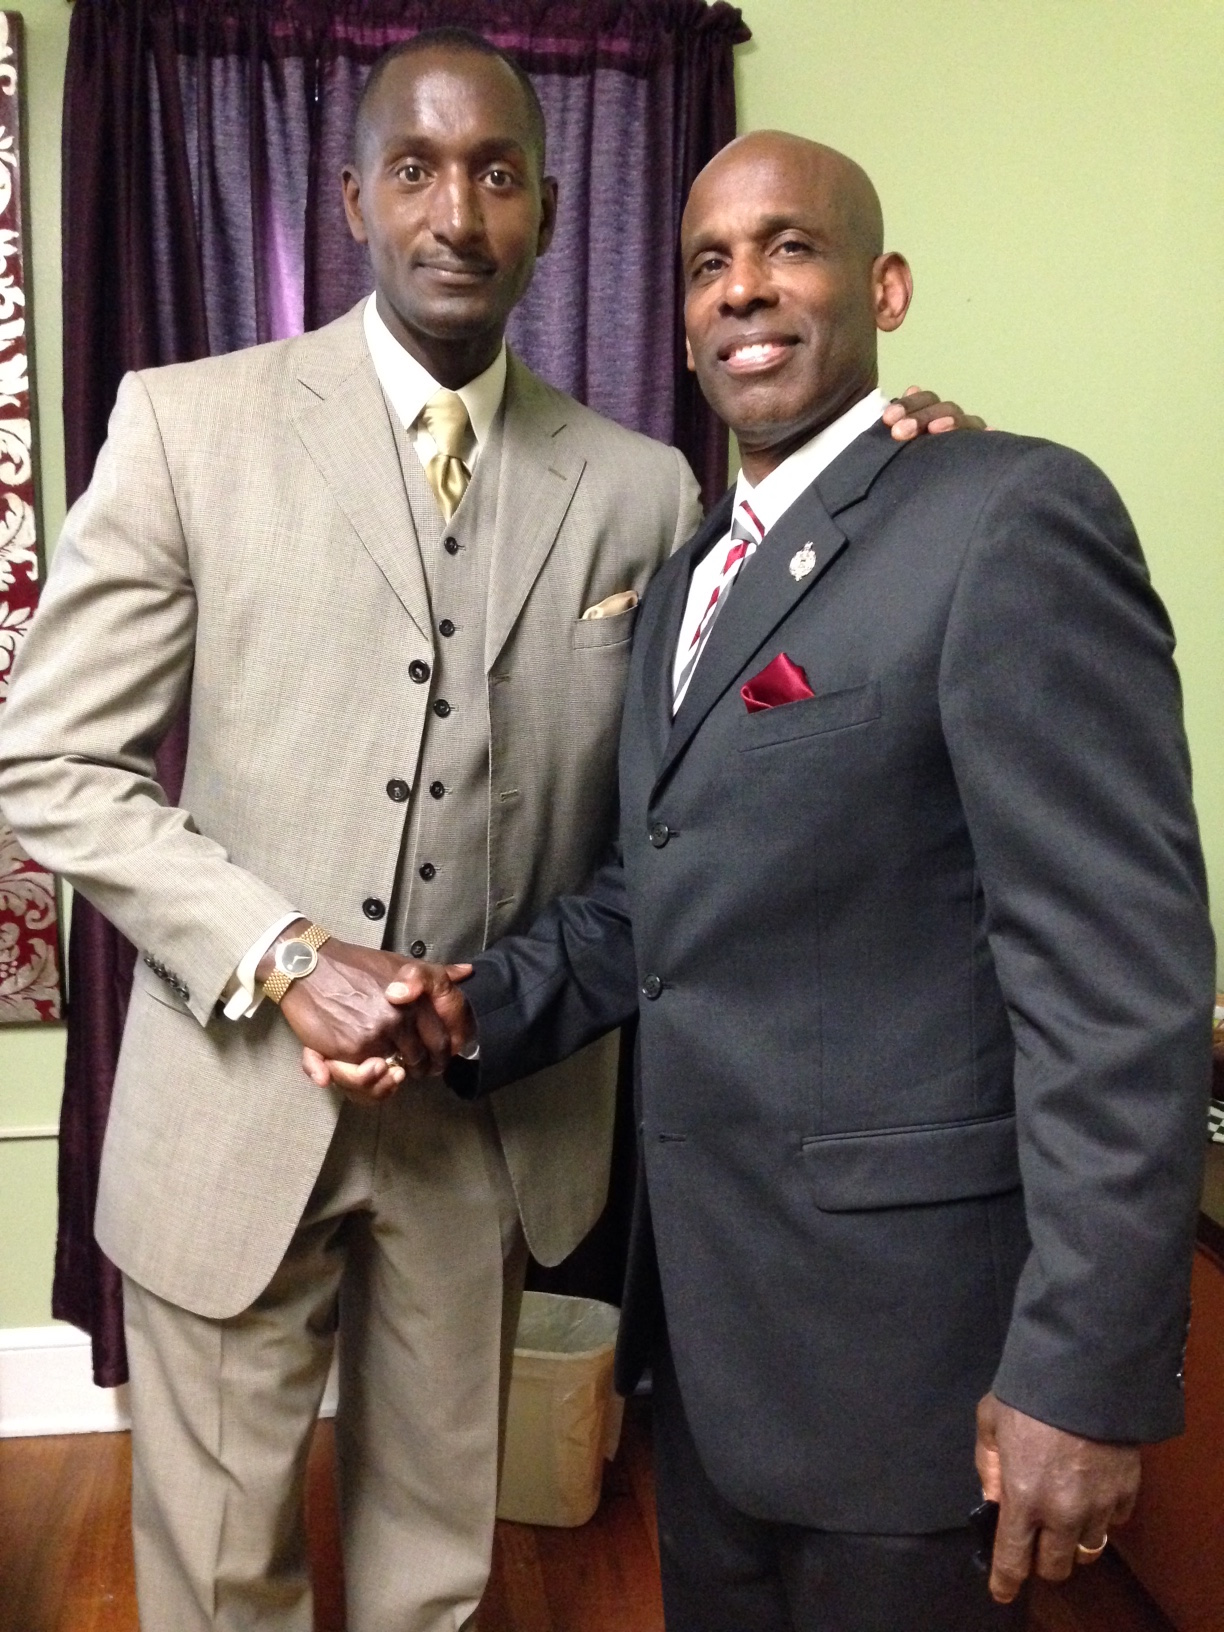 Carl and Dr. Randall Pinkett